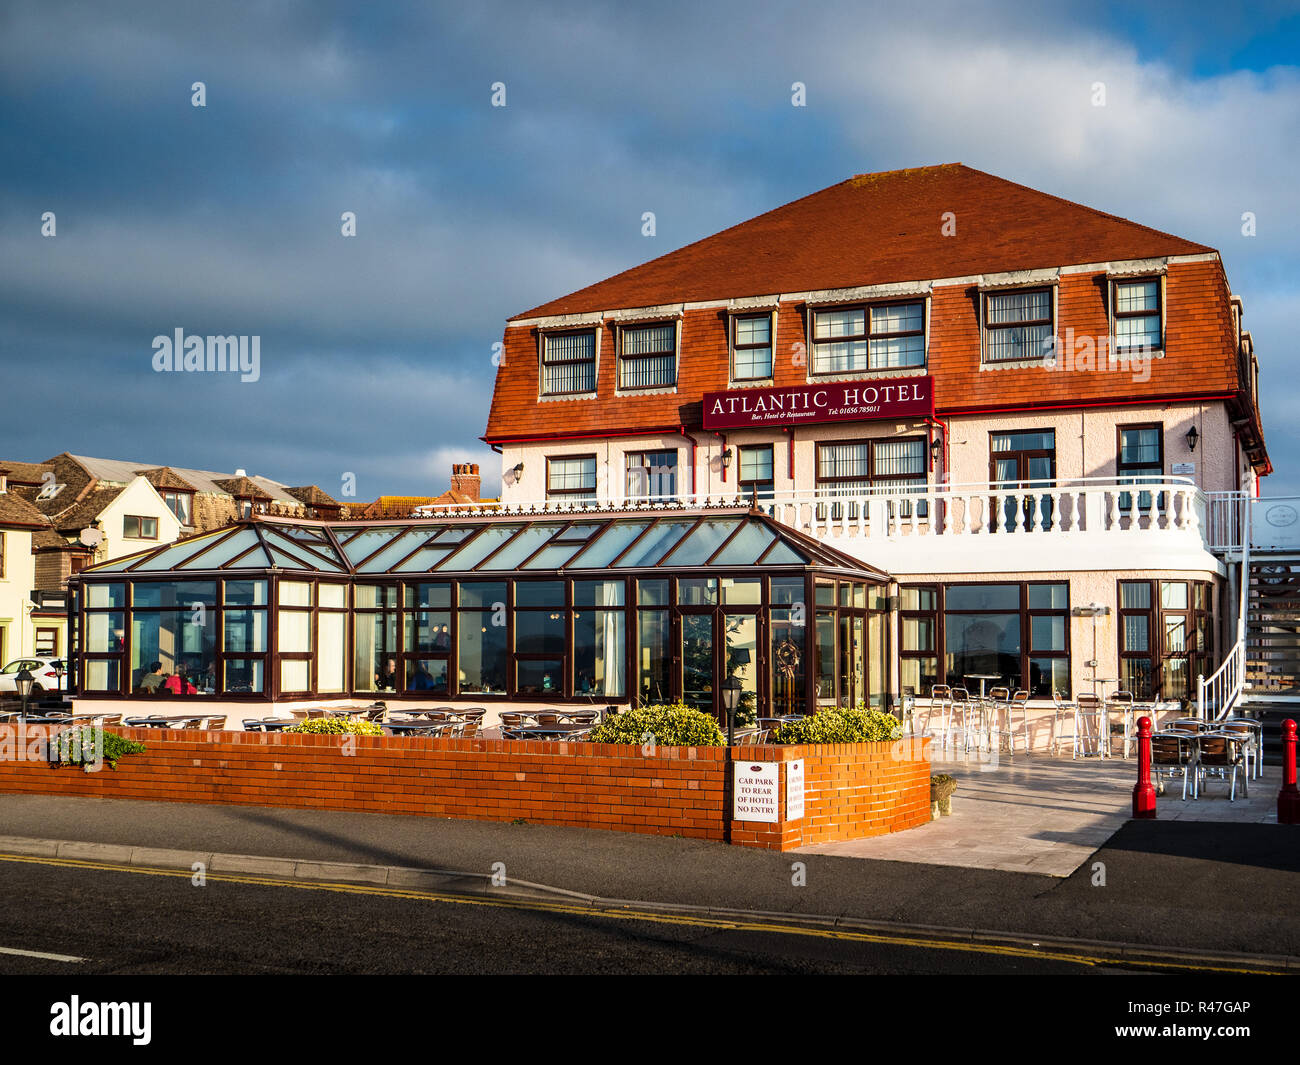 Atlantic Hotel Porthcawl - the Porthcawl Atlantic Hotel on the seafront in the South Wales seaside resort of Porthcawl - Stock Image